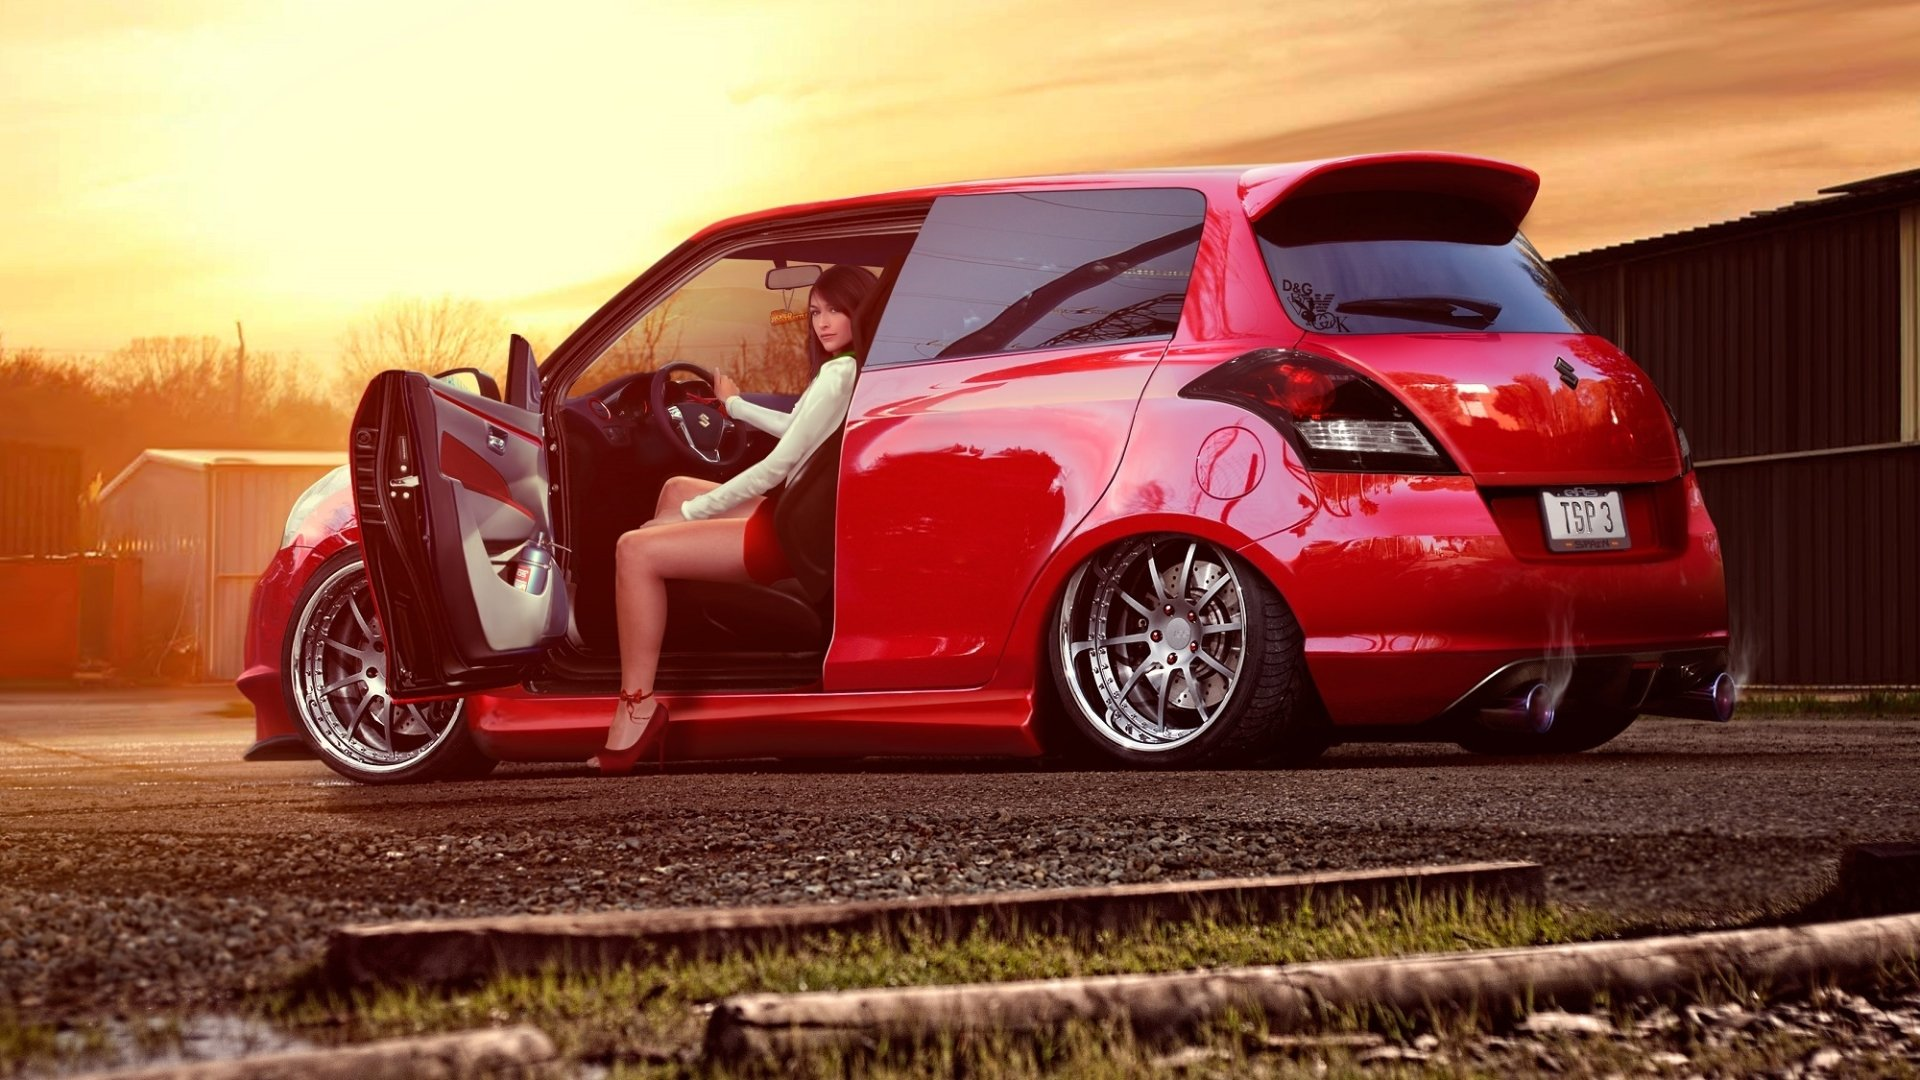 Women - Girls & Cars  Red Car Suzuki Wallpaper